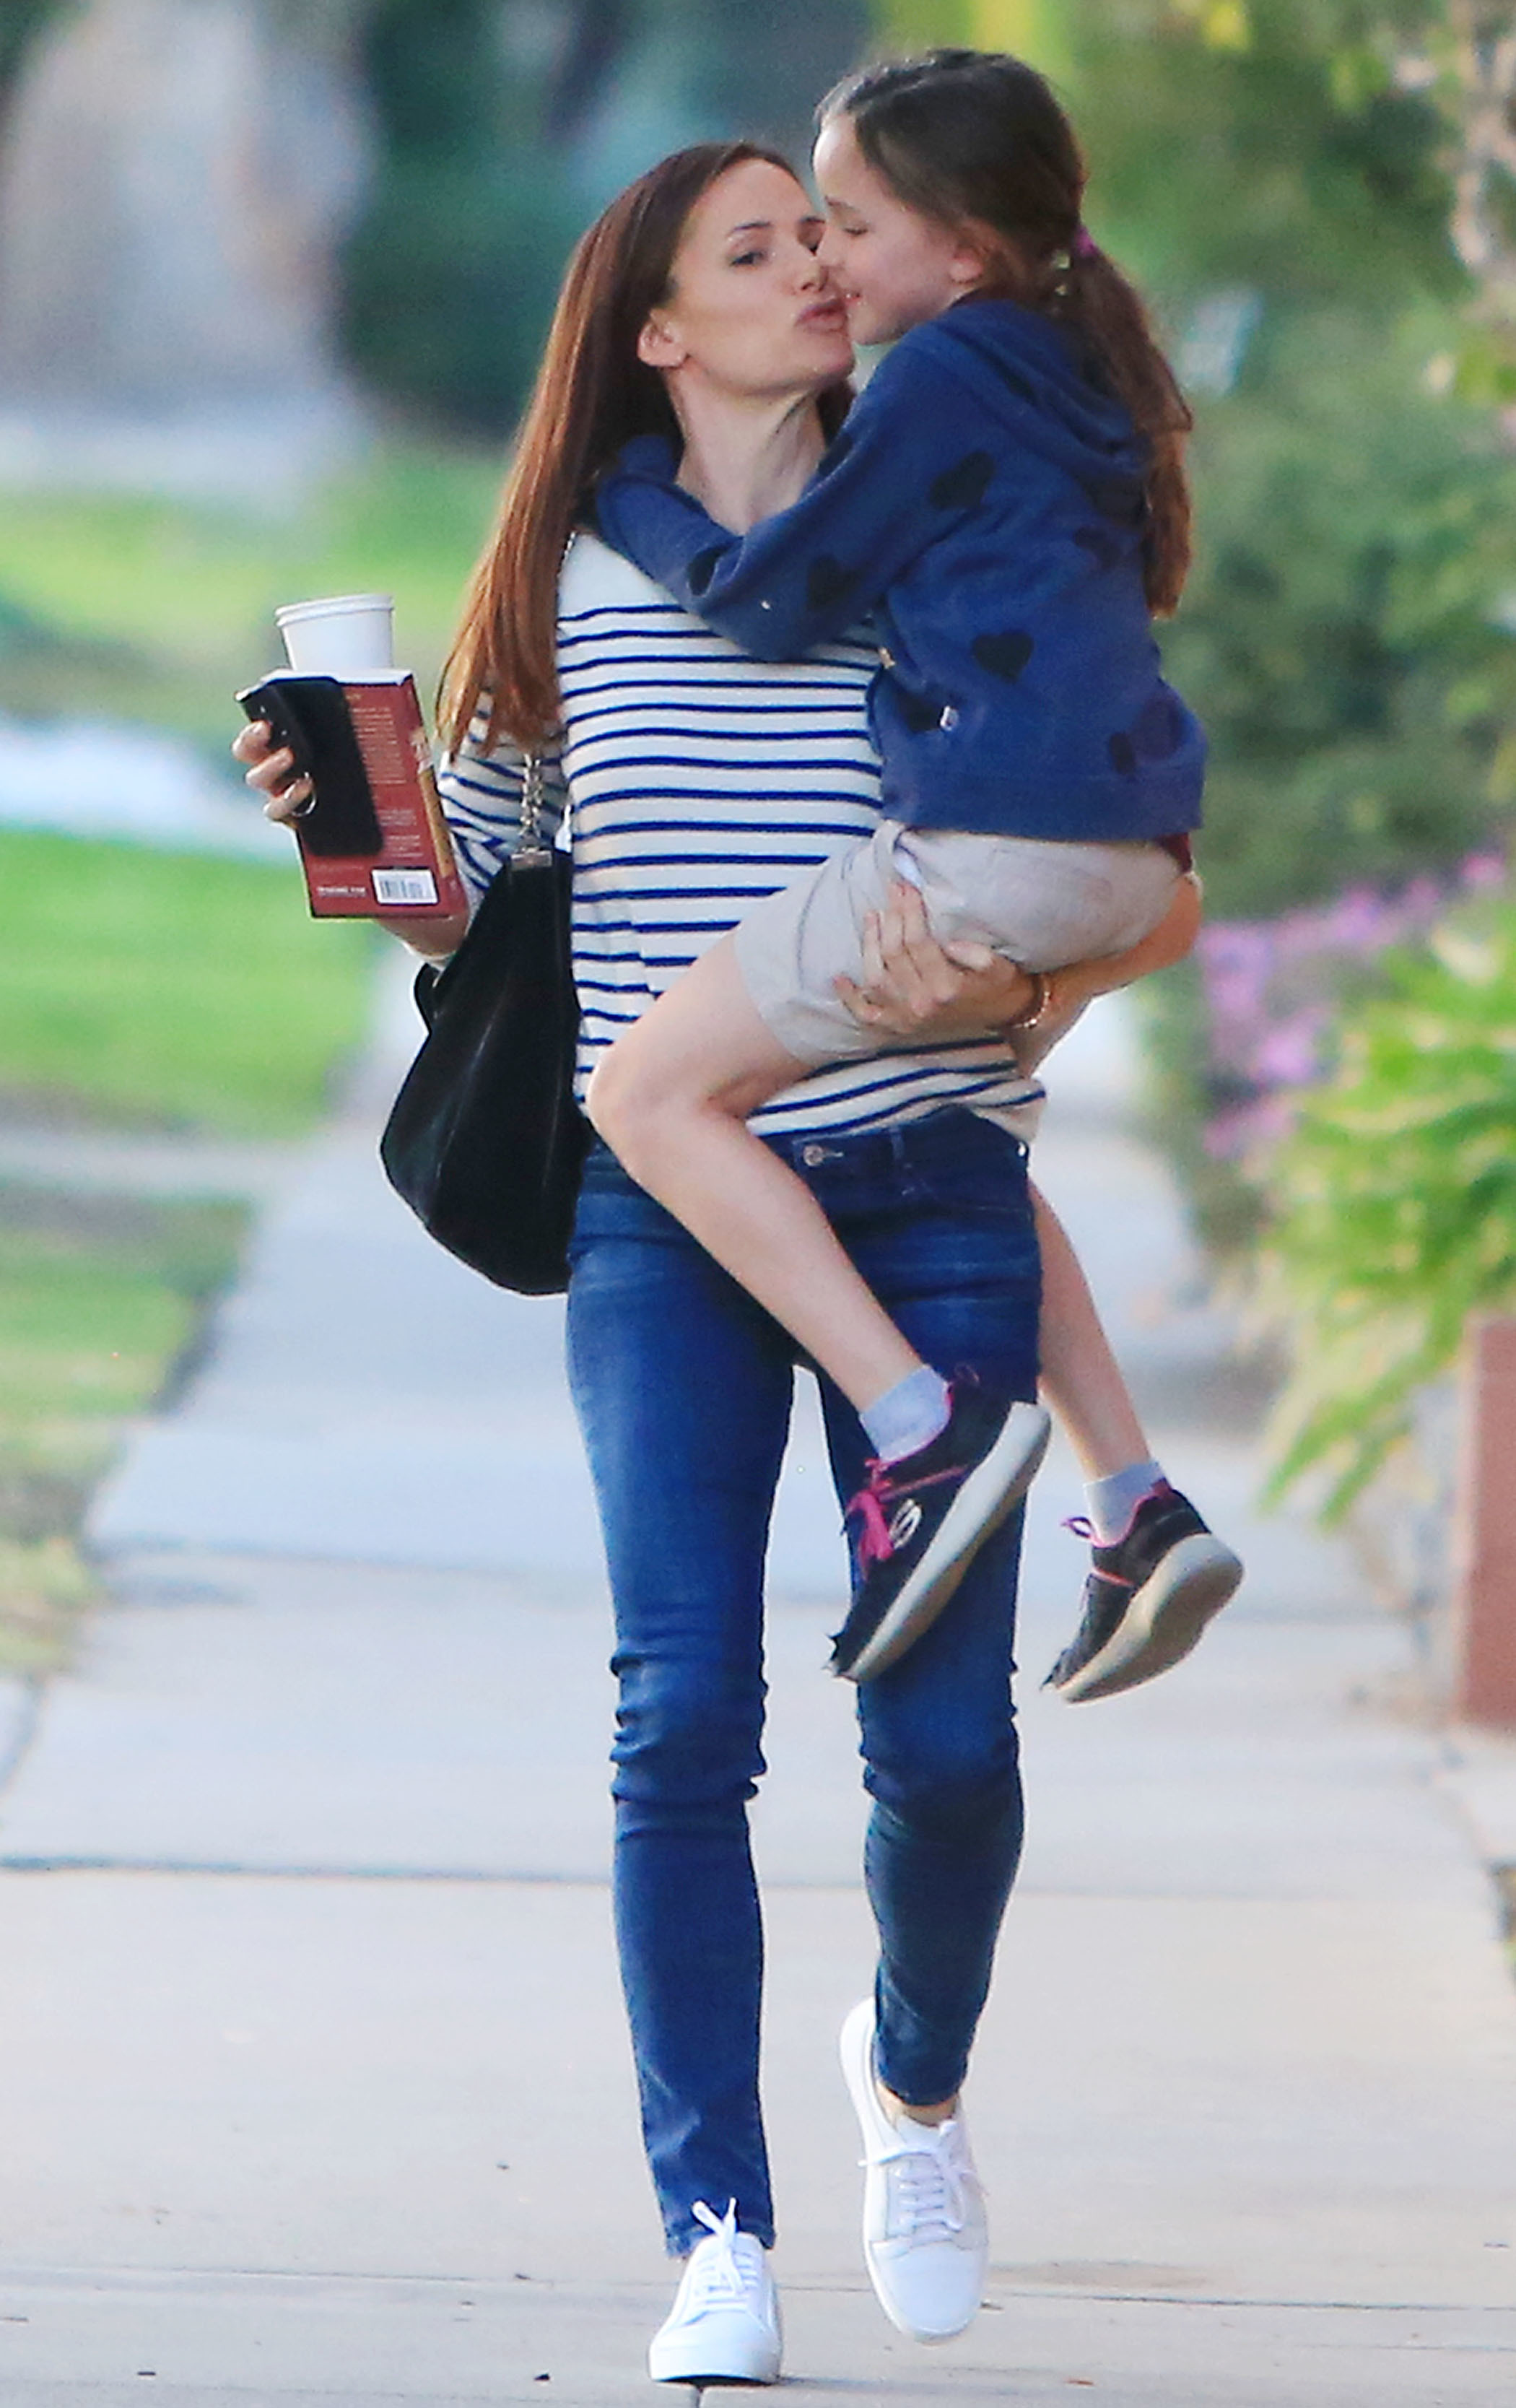 Jennifer Garner and Seraphina Affleck having a good time while shopping in Los Angeles on Feb. 13, 2018.